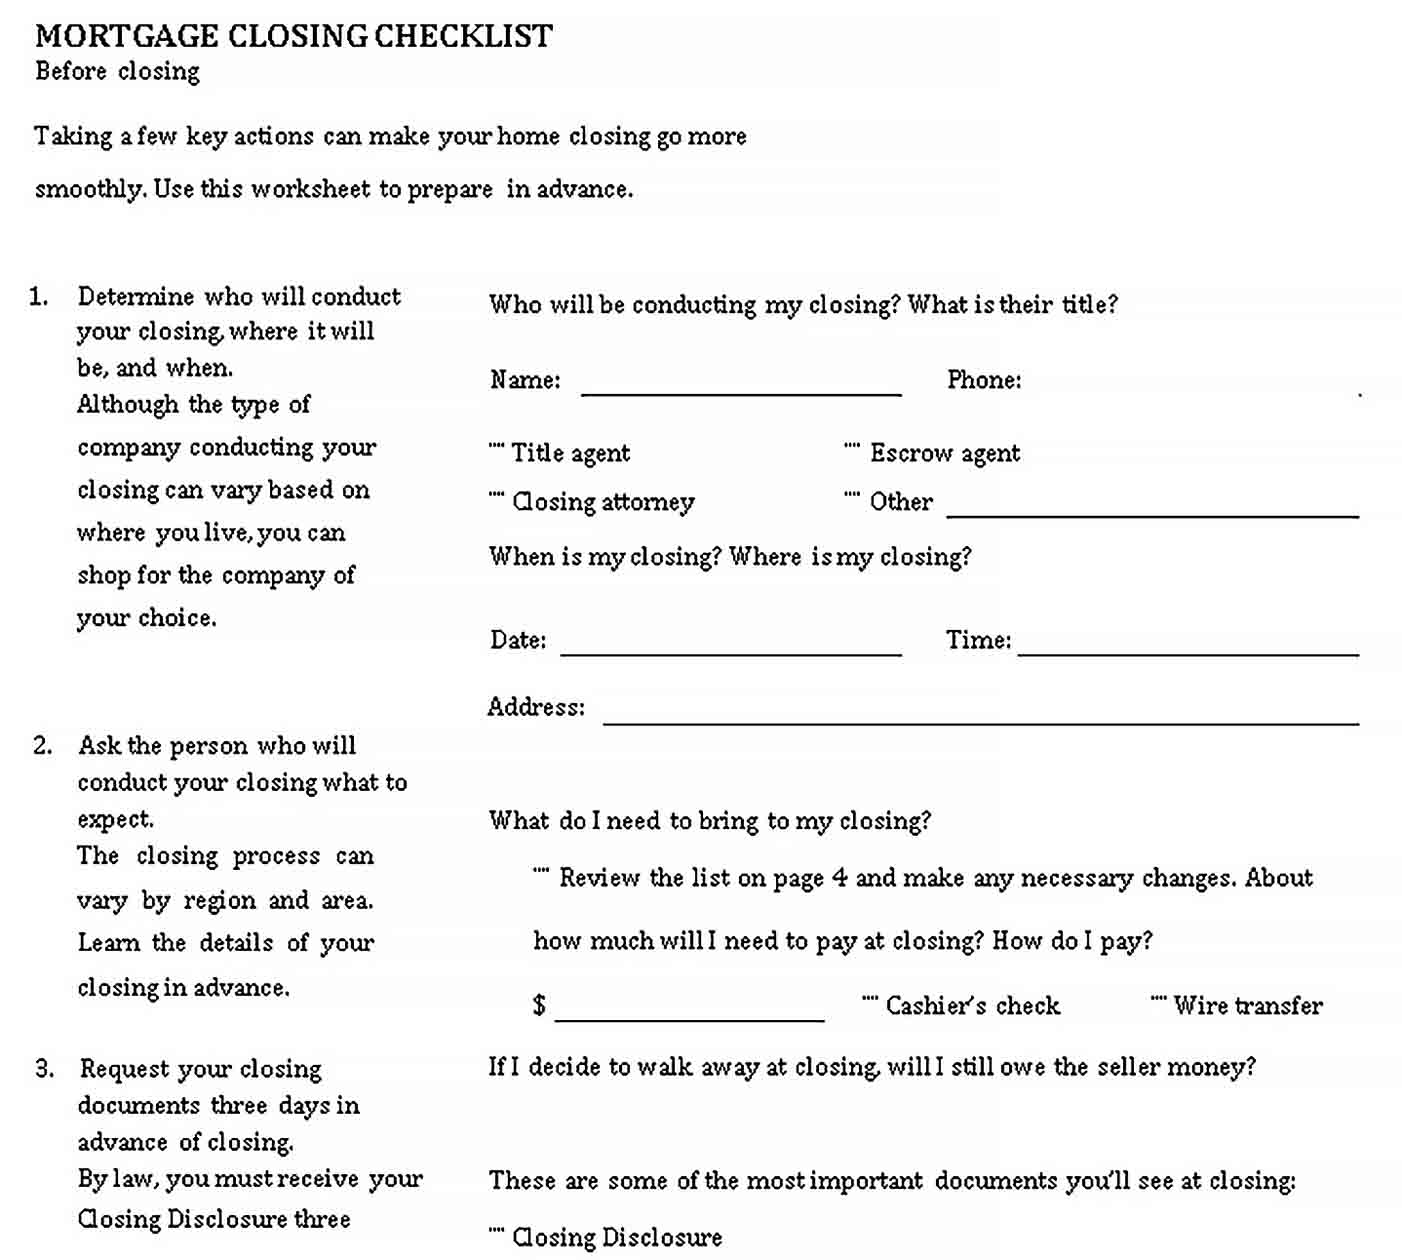 Template Simple Mortgage Closing Checklist Template